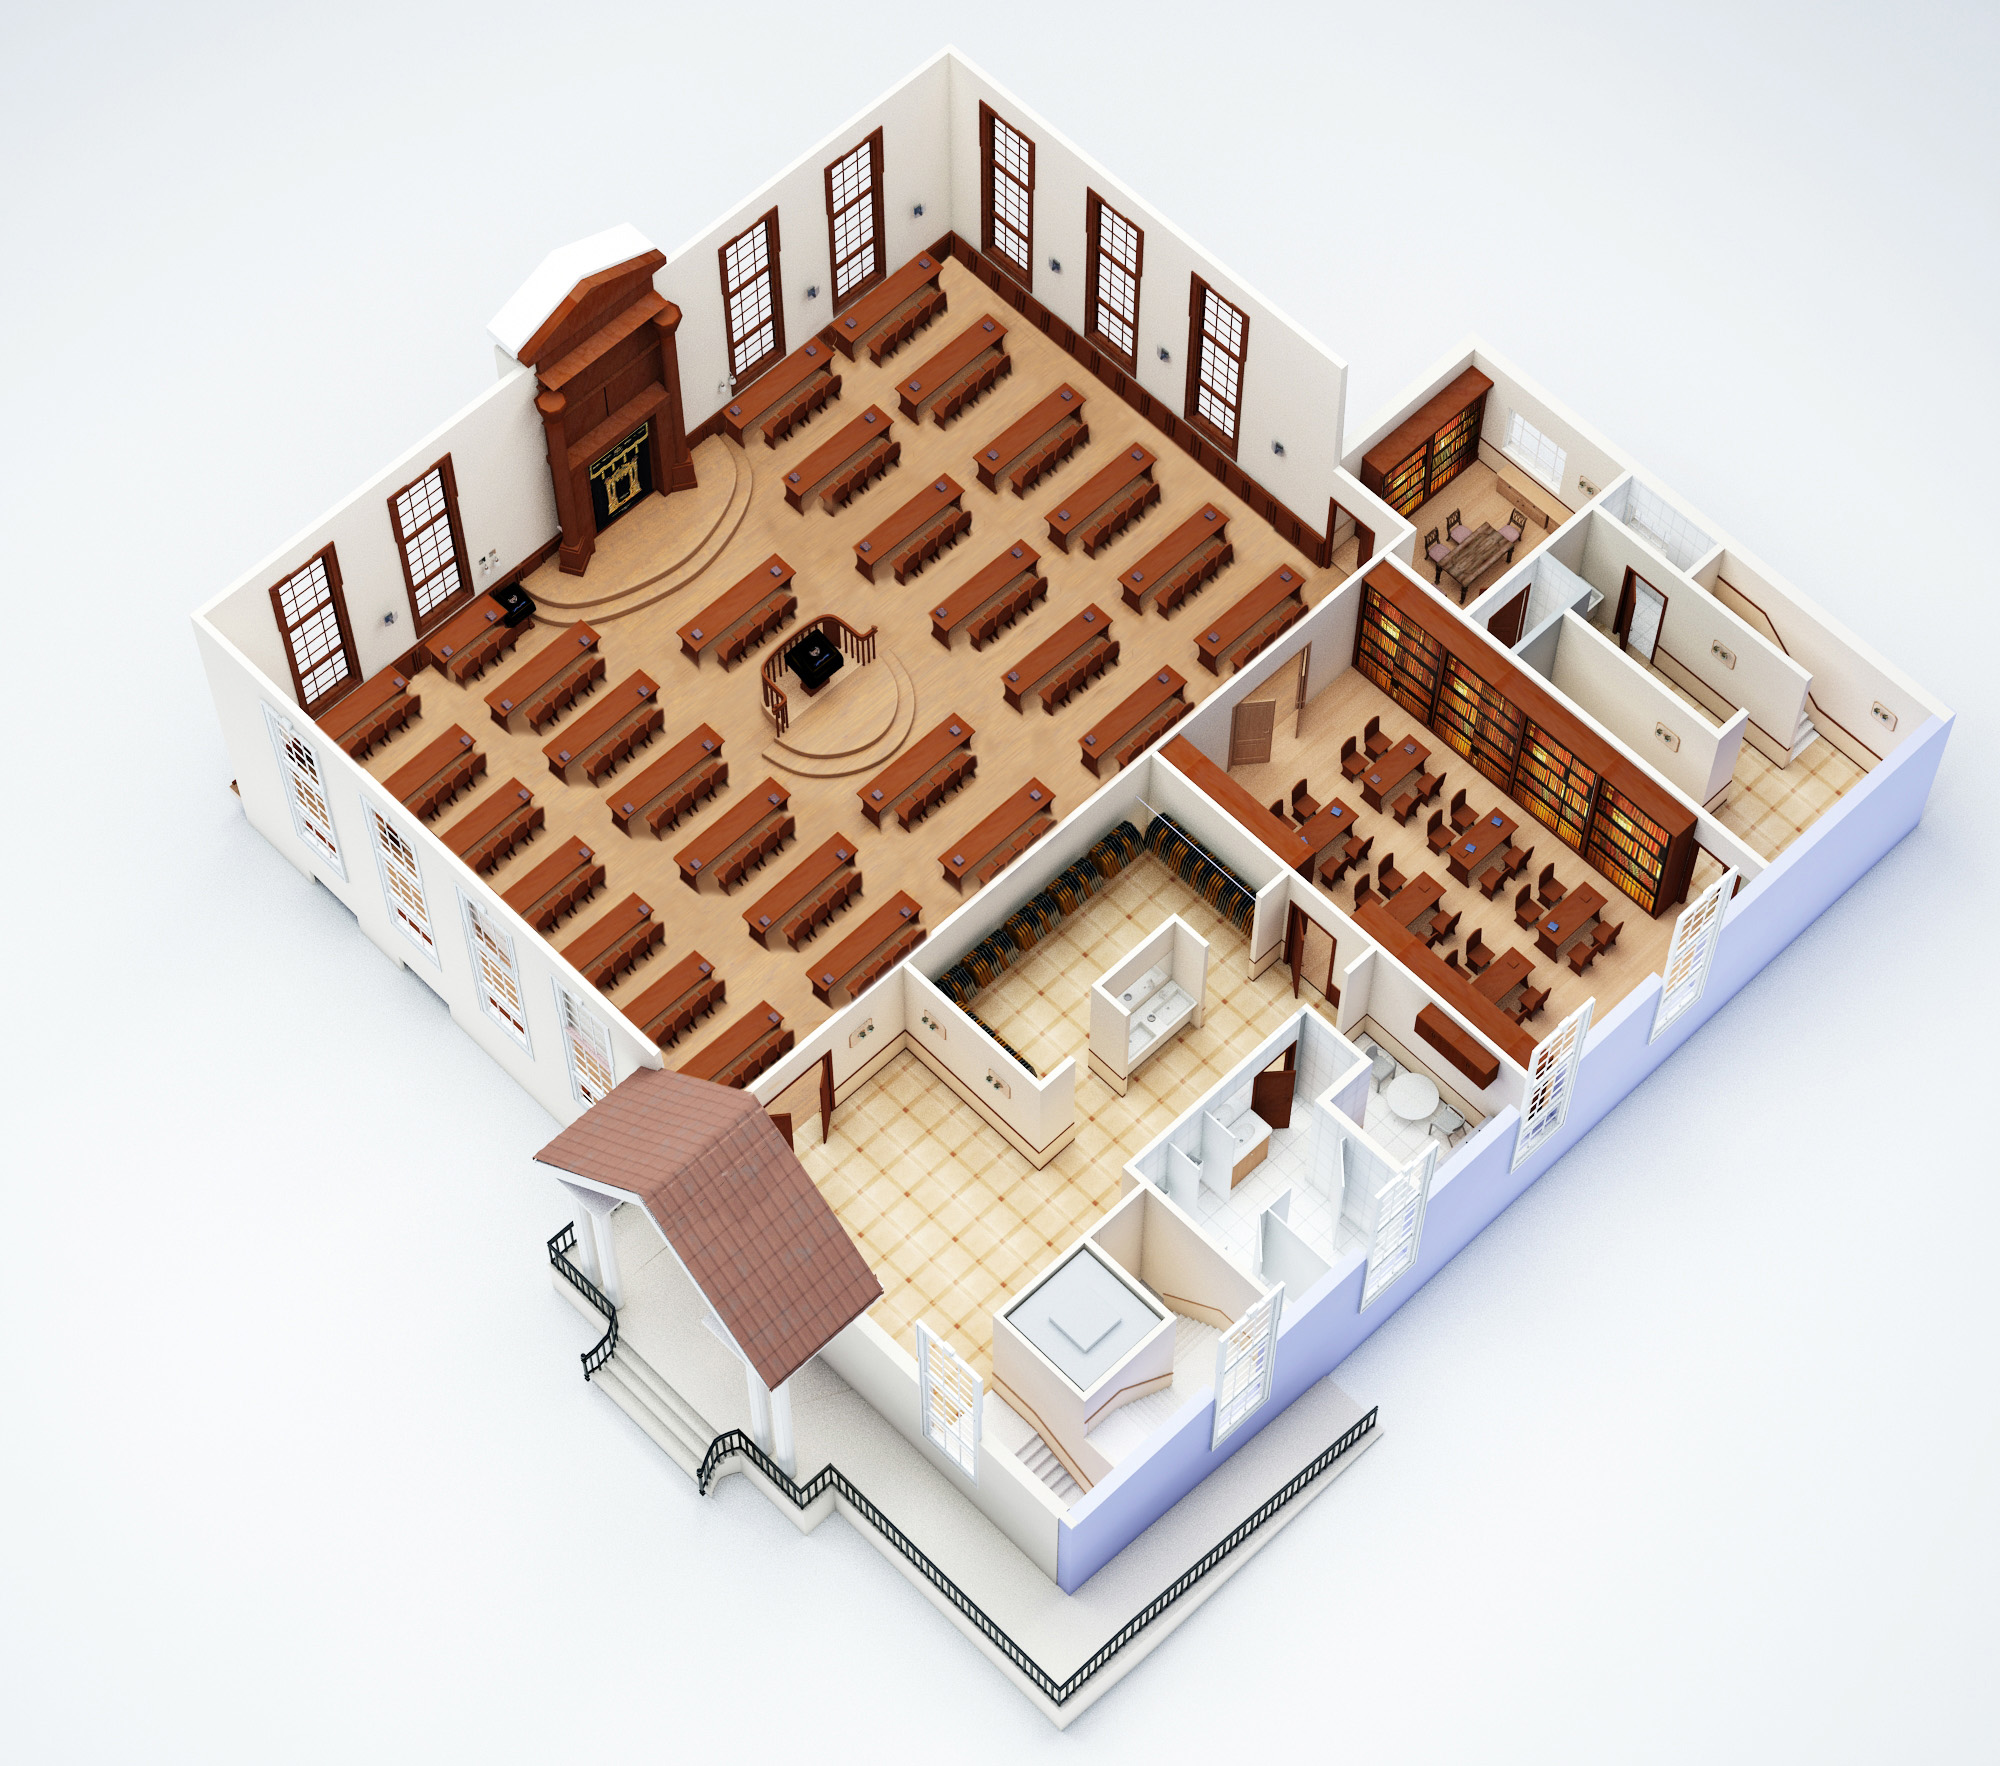 Synagogue floor plan model